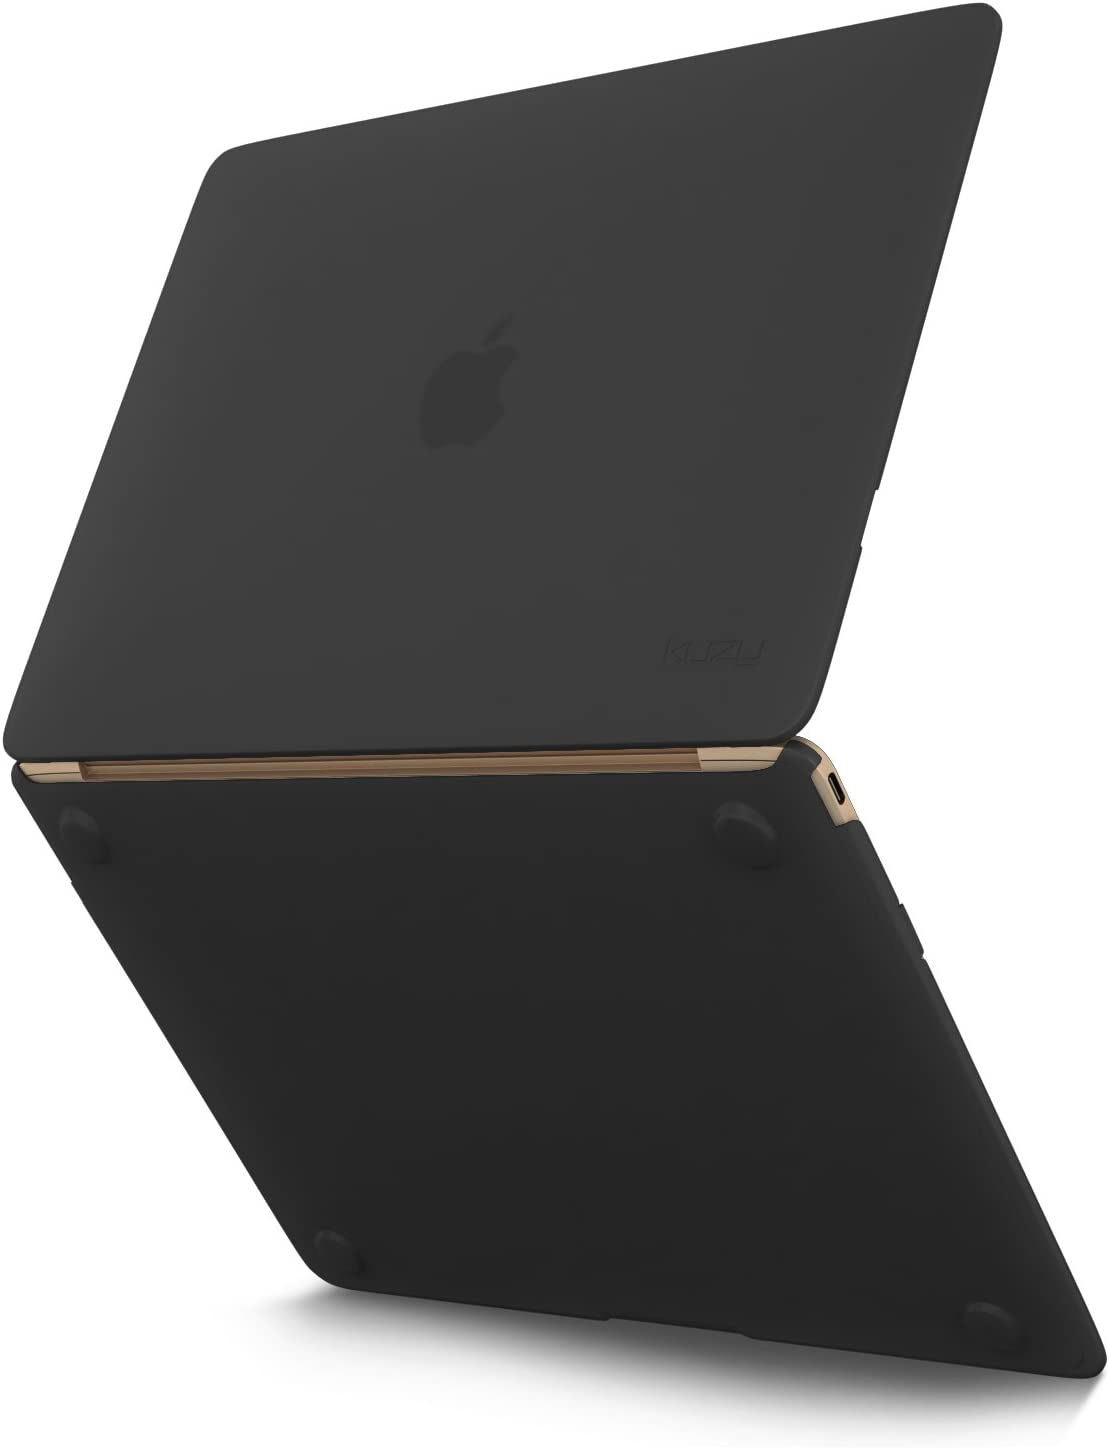 Kuzy MacBook 12 inch Case Silicone Touch Cover A1534 (Newest Version) - Black